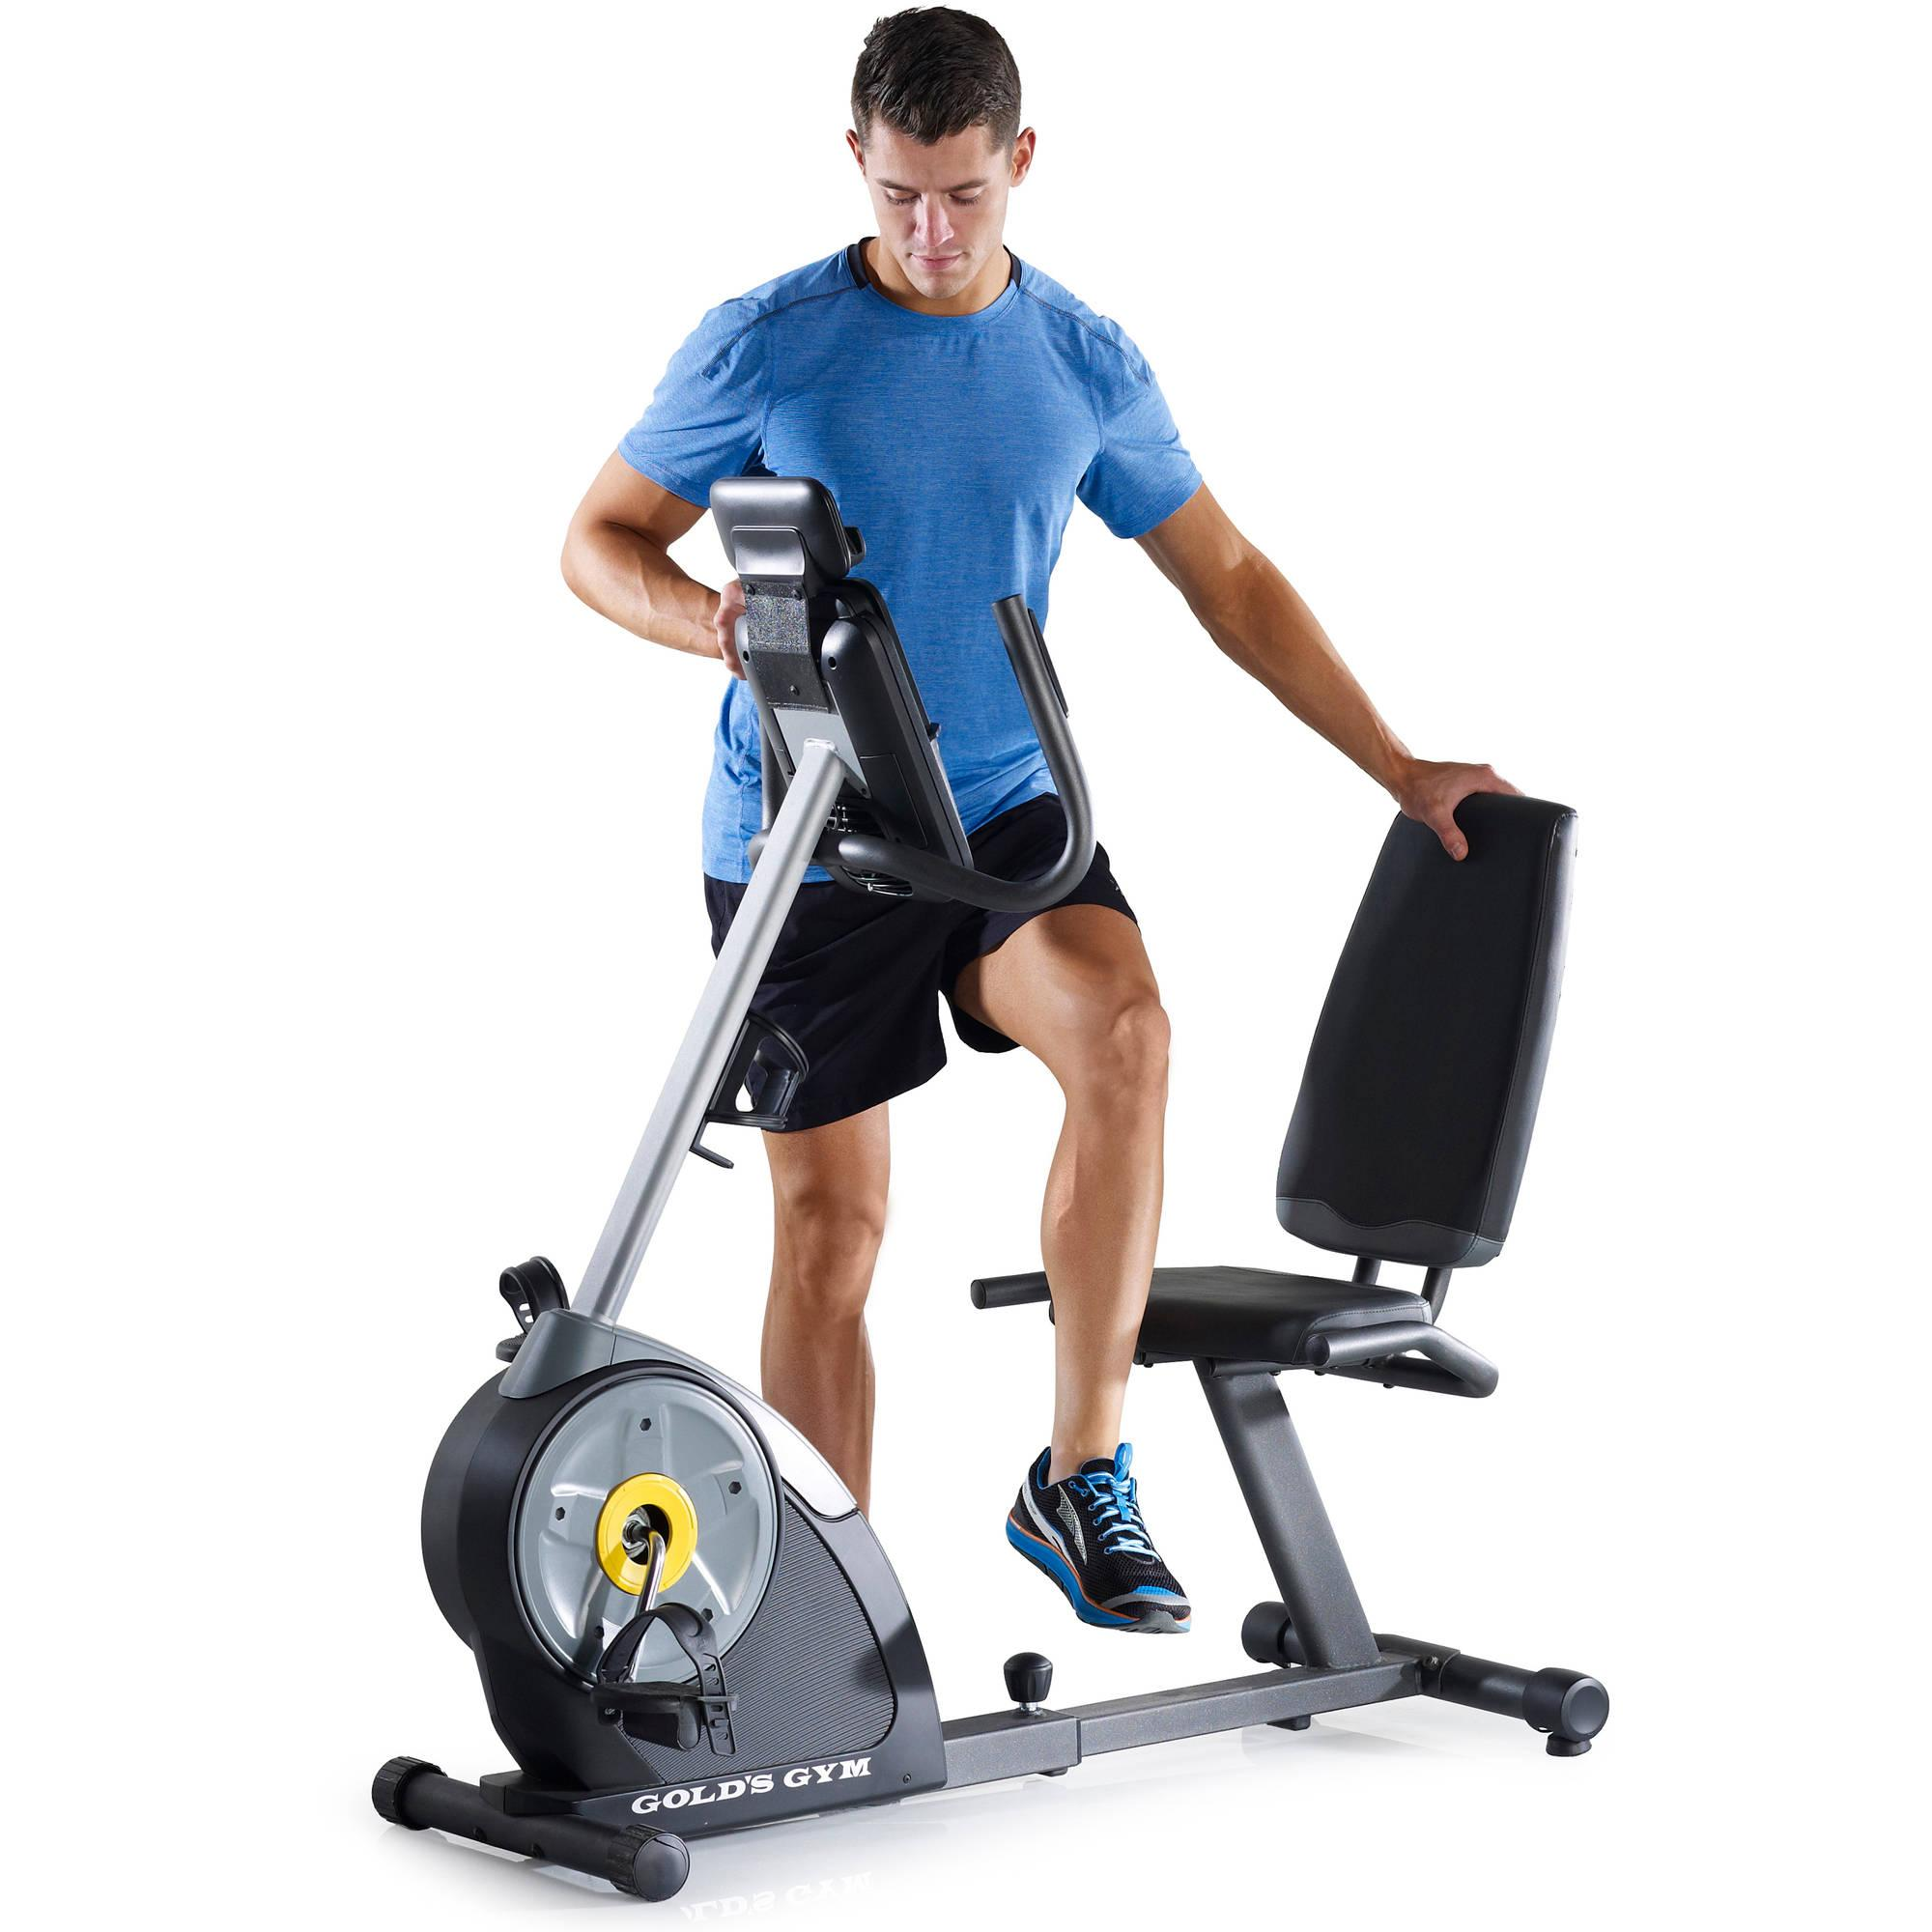 Exercise Bike Next Day Delivery: Gold's Gym Cycle Trainer 400R Exercise Bike